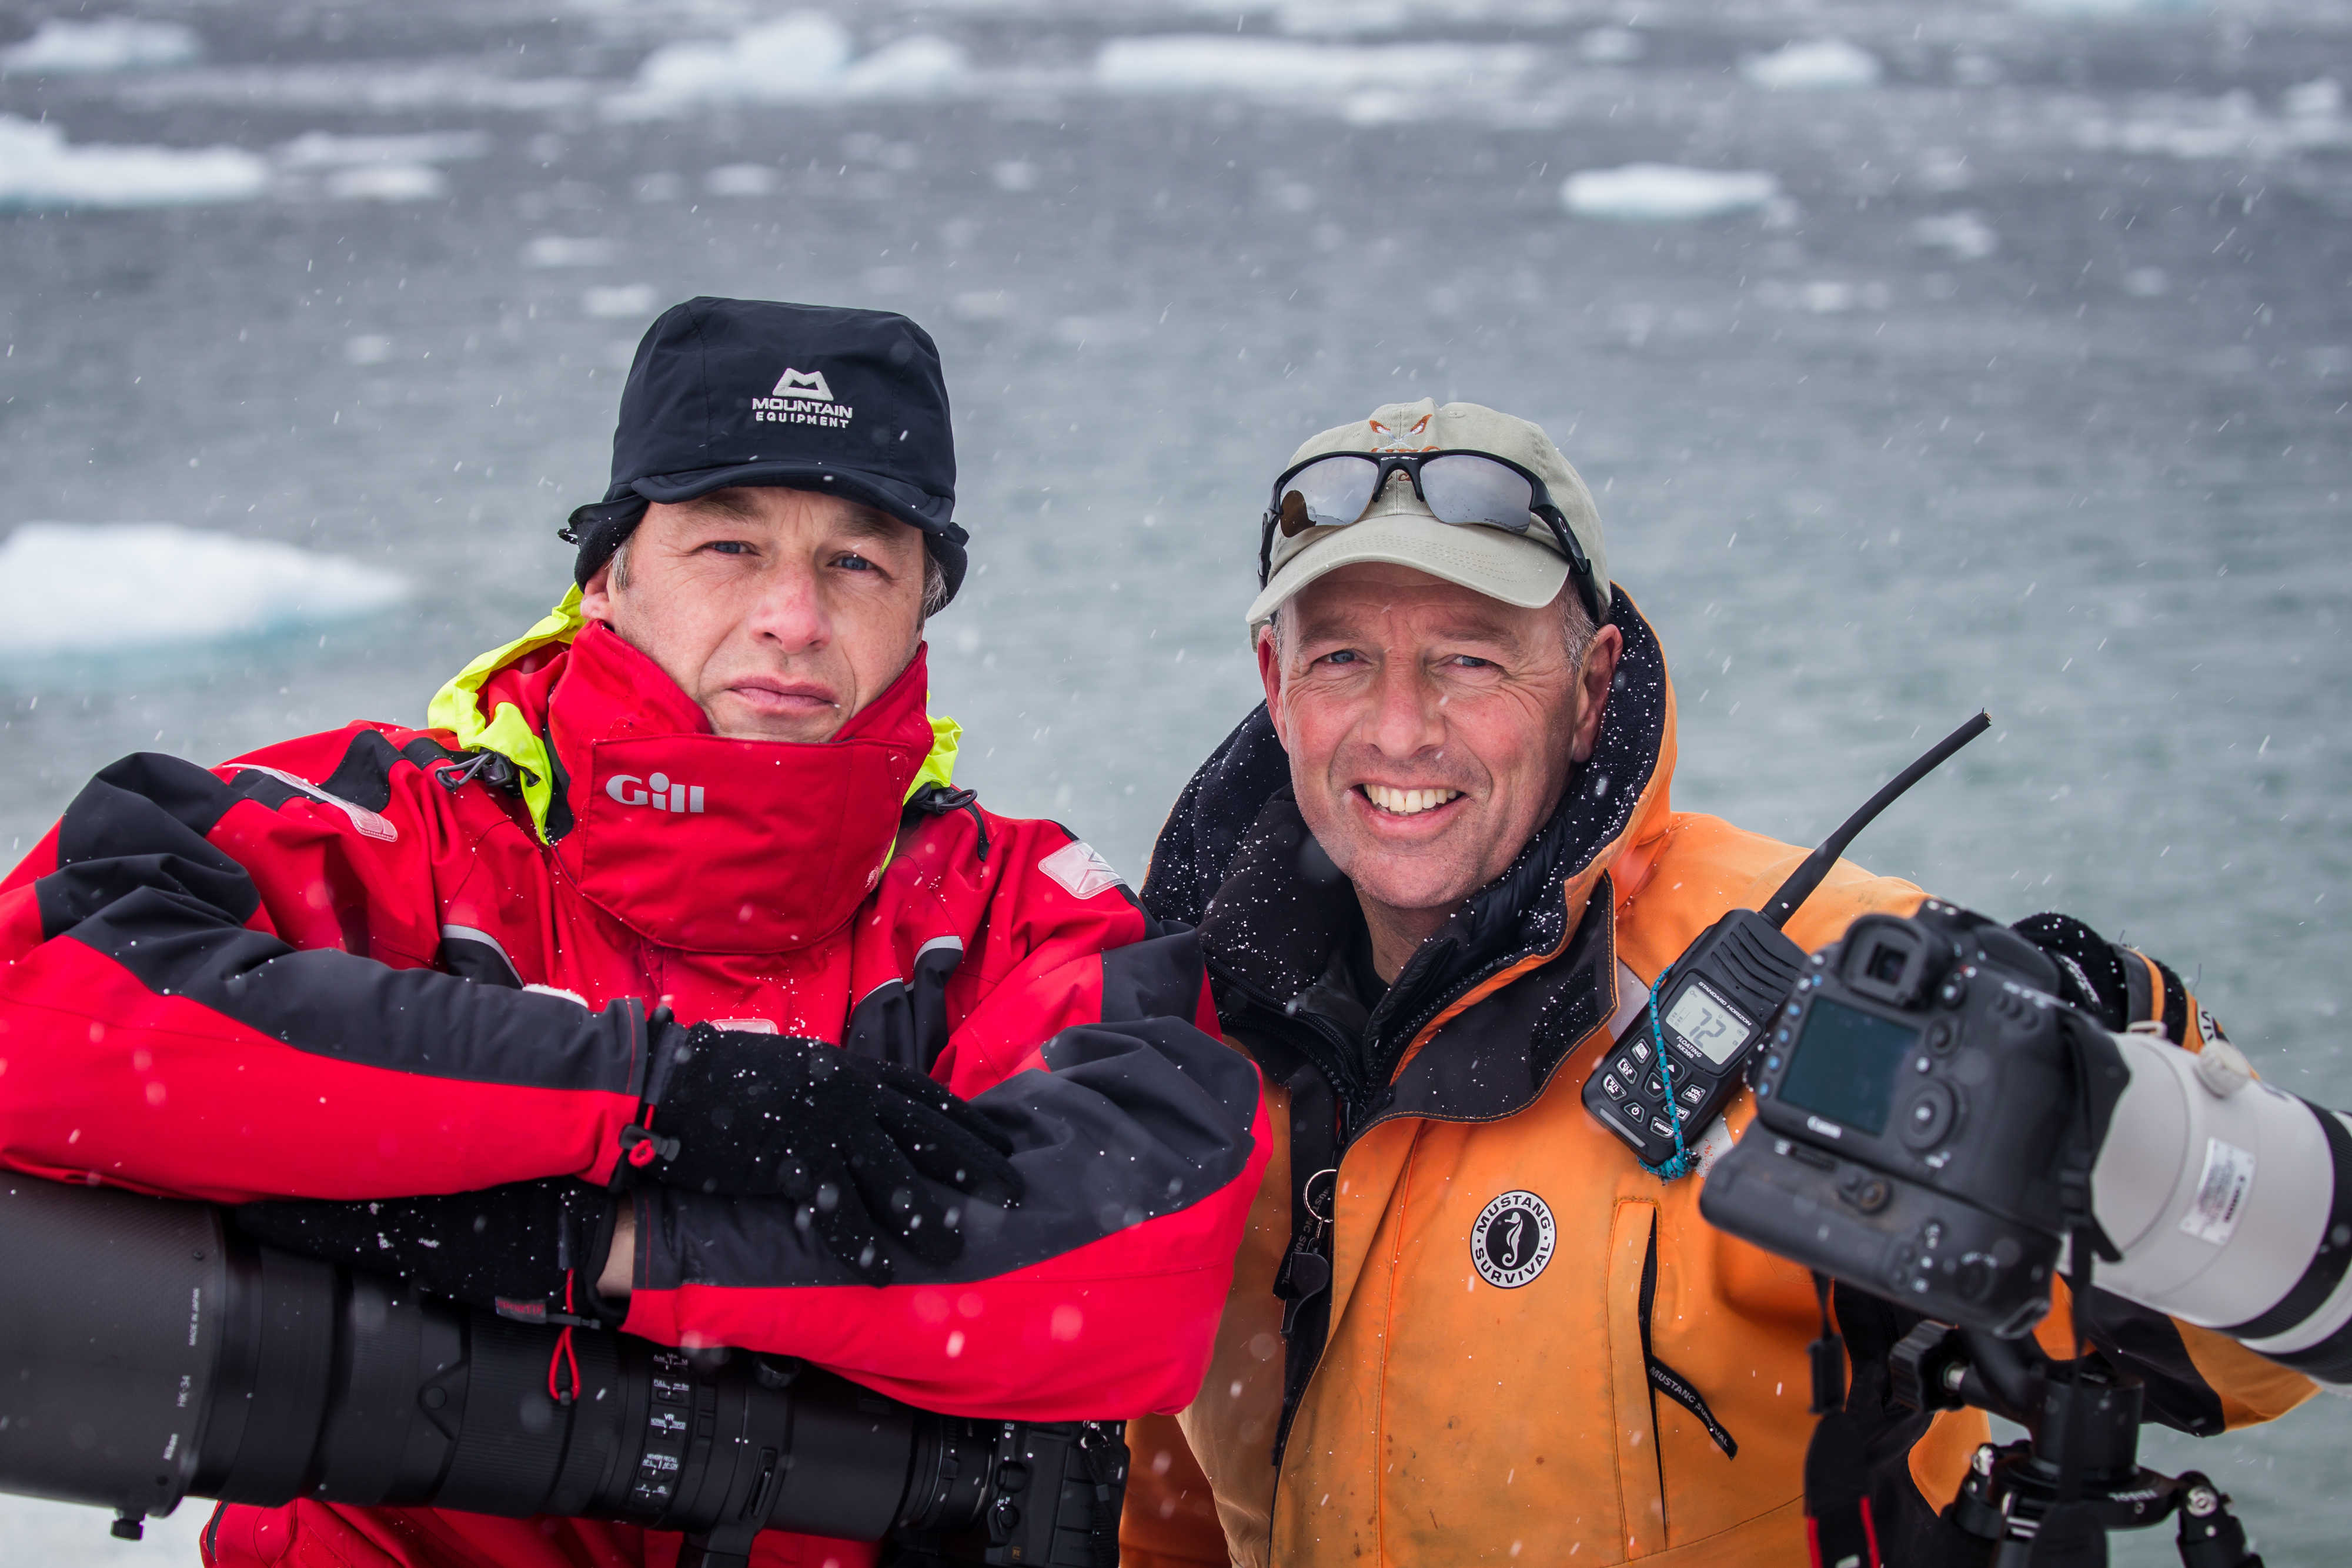 Paul Goldstein and Chris Packham